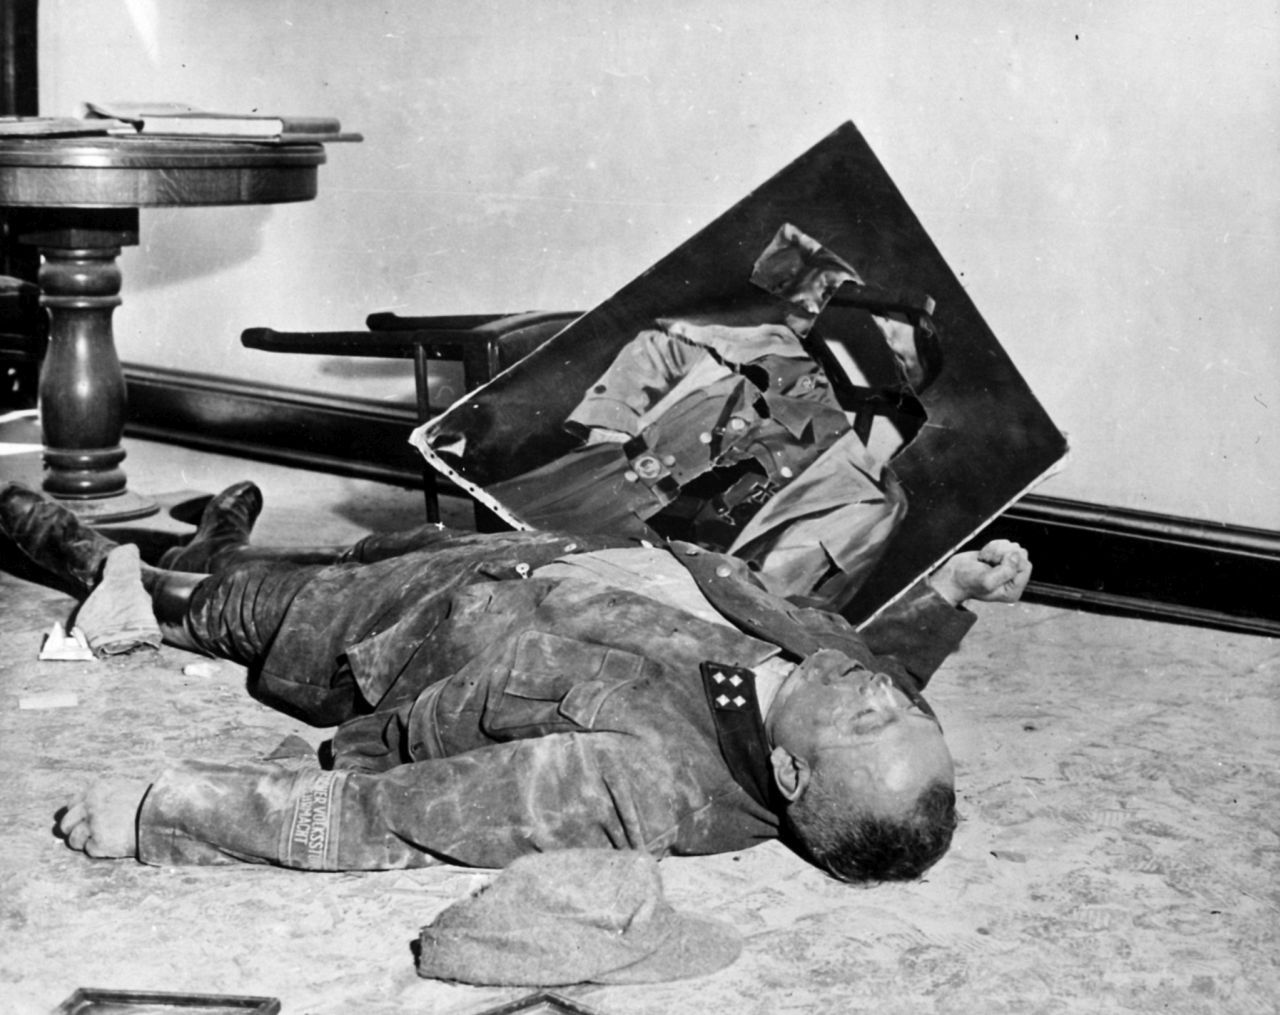 Selbstmord von Walter Dönicke, Volkssturm-Bataillonsführer und früherer Oberbürgermeister (1937/38), im Leipziger Neuen Rathaus, 19. April 1945 (Wikimedia Commons, National Archives and Record Administration [NARA]/Public Domain)